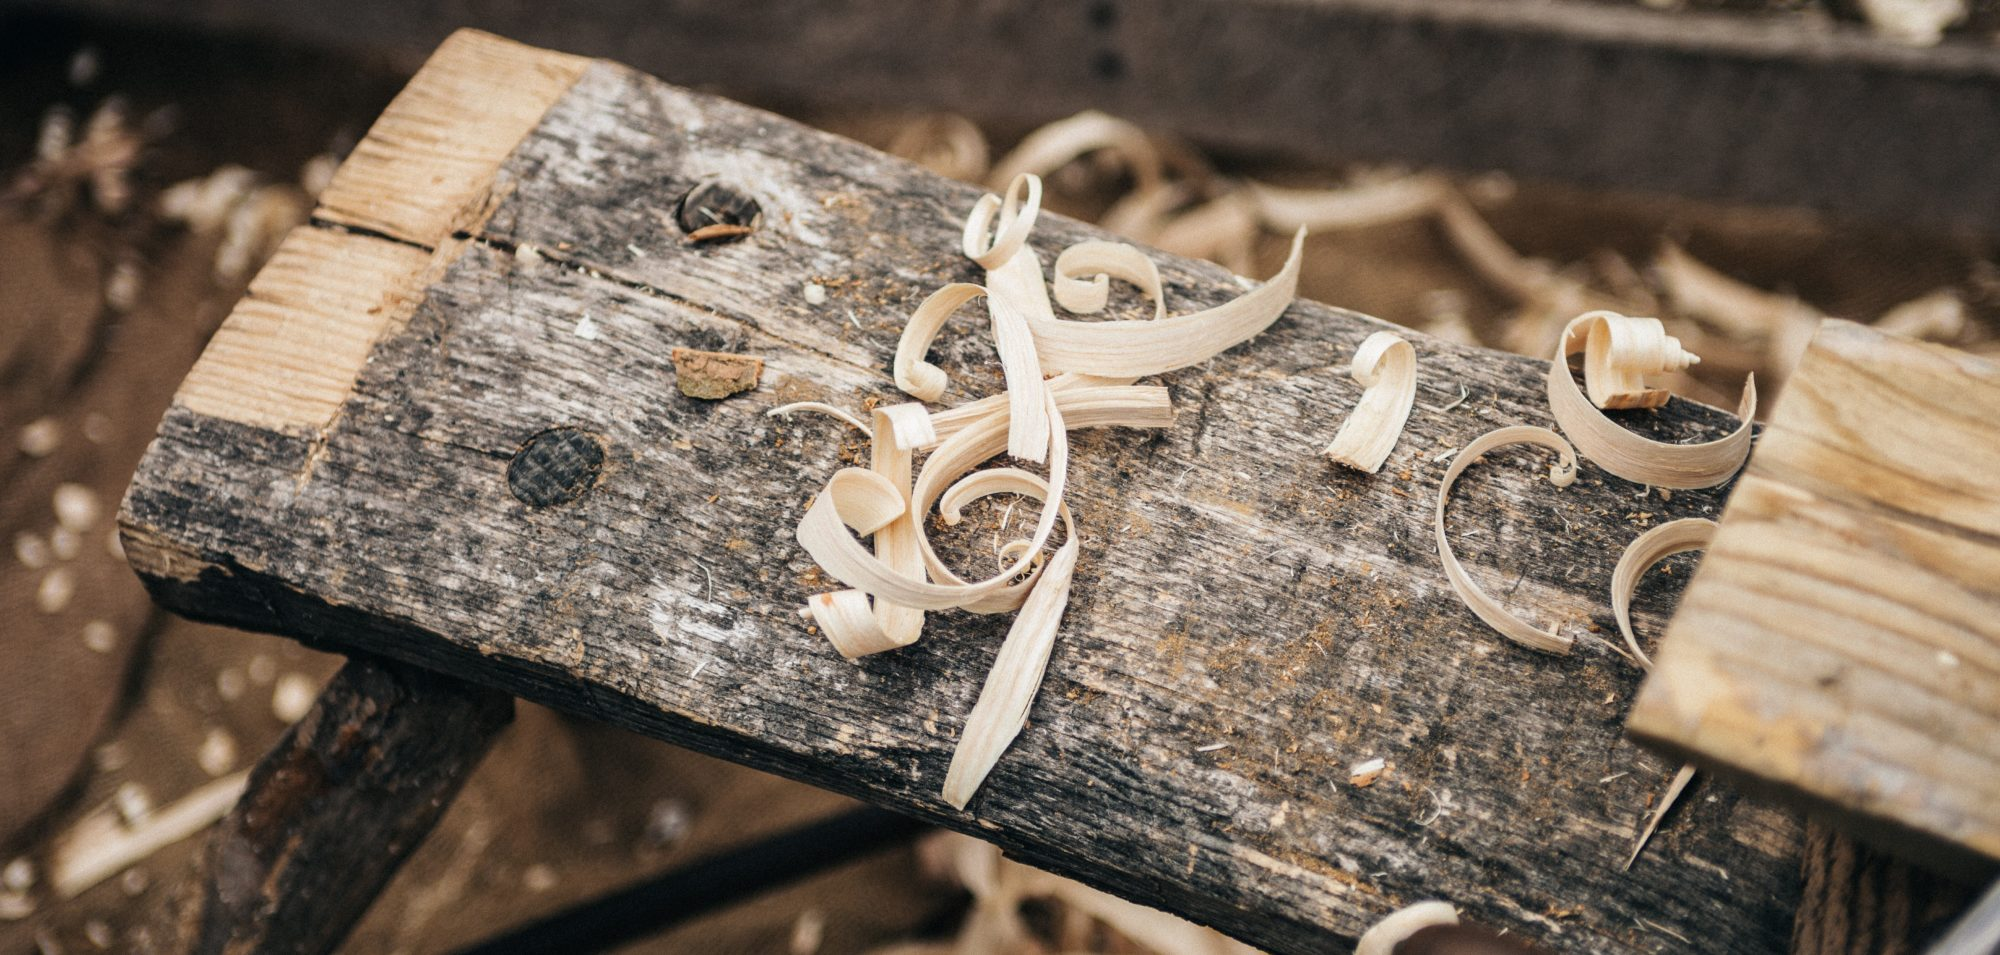 Woodcarvings and other Art of Maura Macaluso